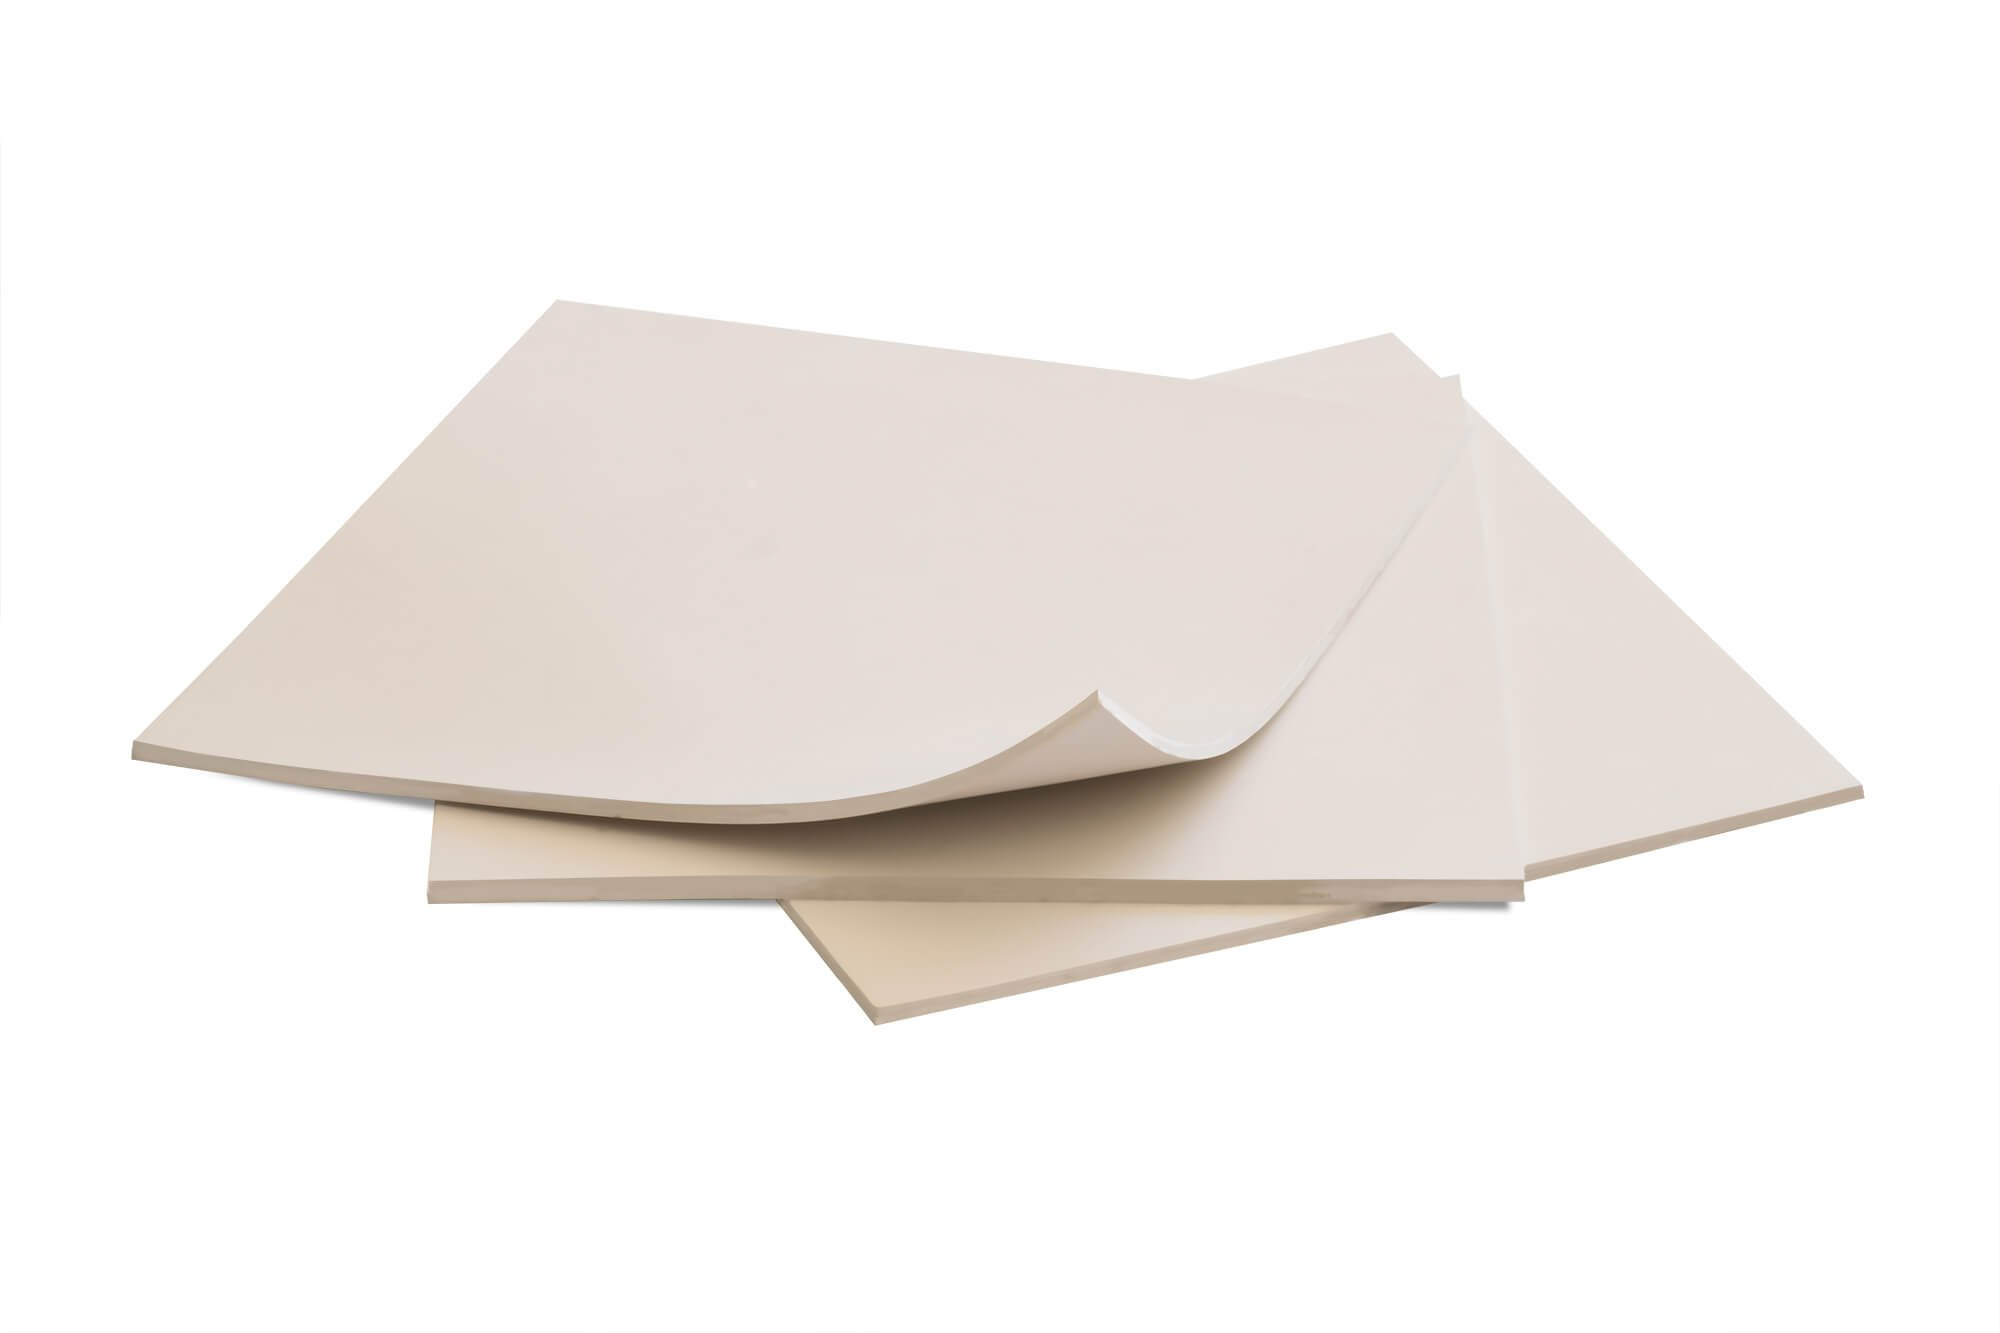 Rubber Sheets, Off White, (Pack of 3) 6x6-Inch by 1/8 (+/-10%) Hardness Shore A 60 / 65 Neoprene, Plumbing, Gaskets DIY Material, Supports, Leveling, Sealing, Bumpers, Protection, Abrasion, Flooring